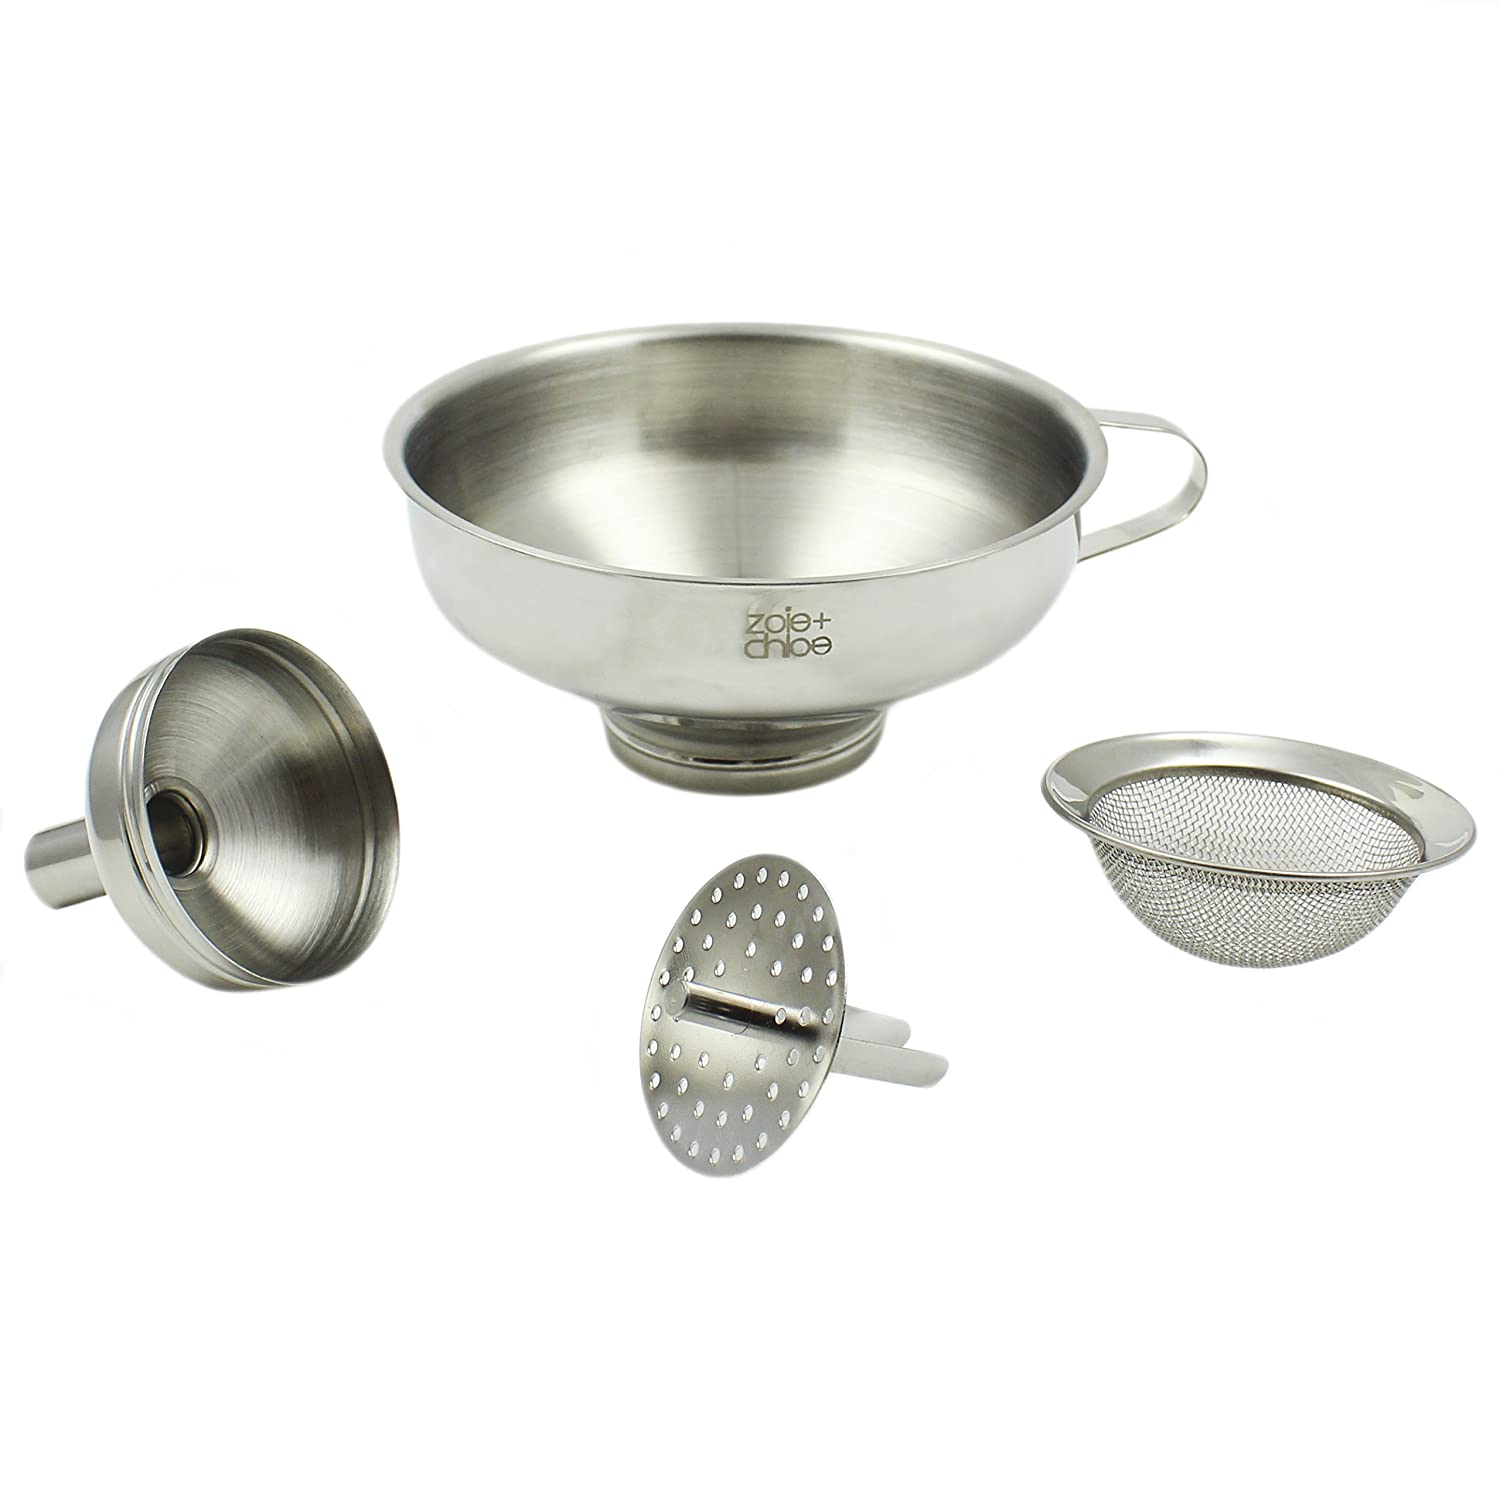 Zoie + Chloe 3-in-1 Stainless Steel Funnel Set - Wide Mouth with Mesh Basket - Narrow Mouth with Strainer